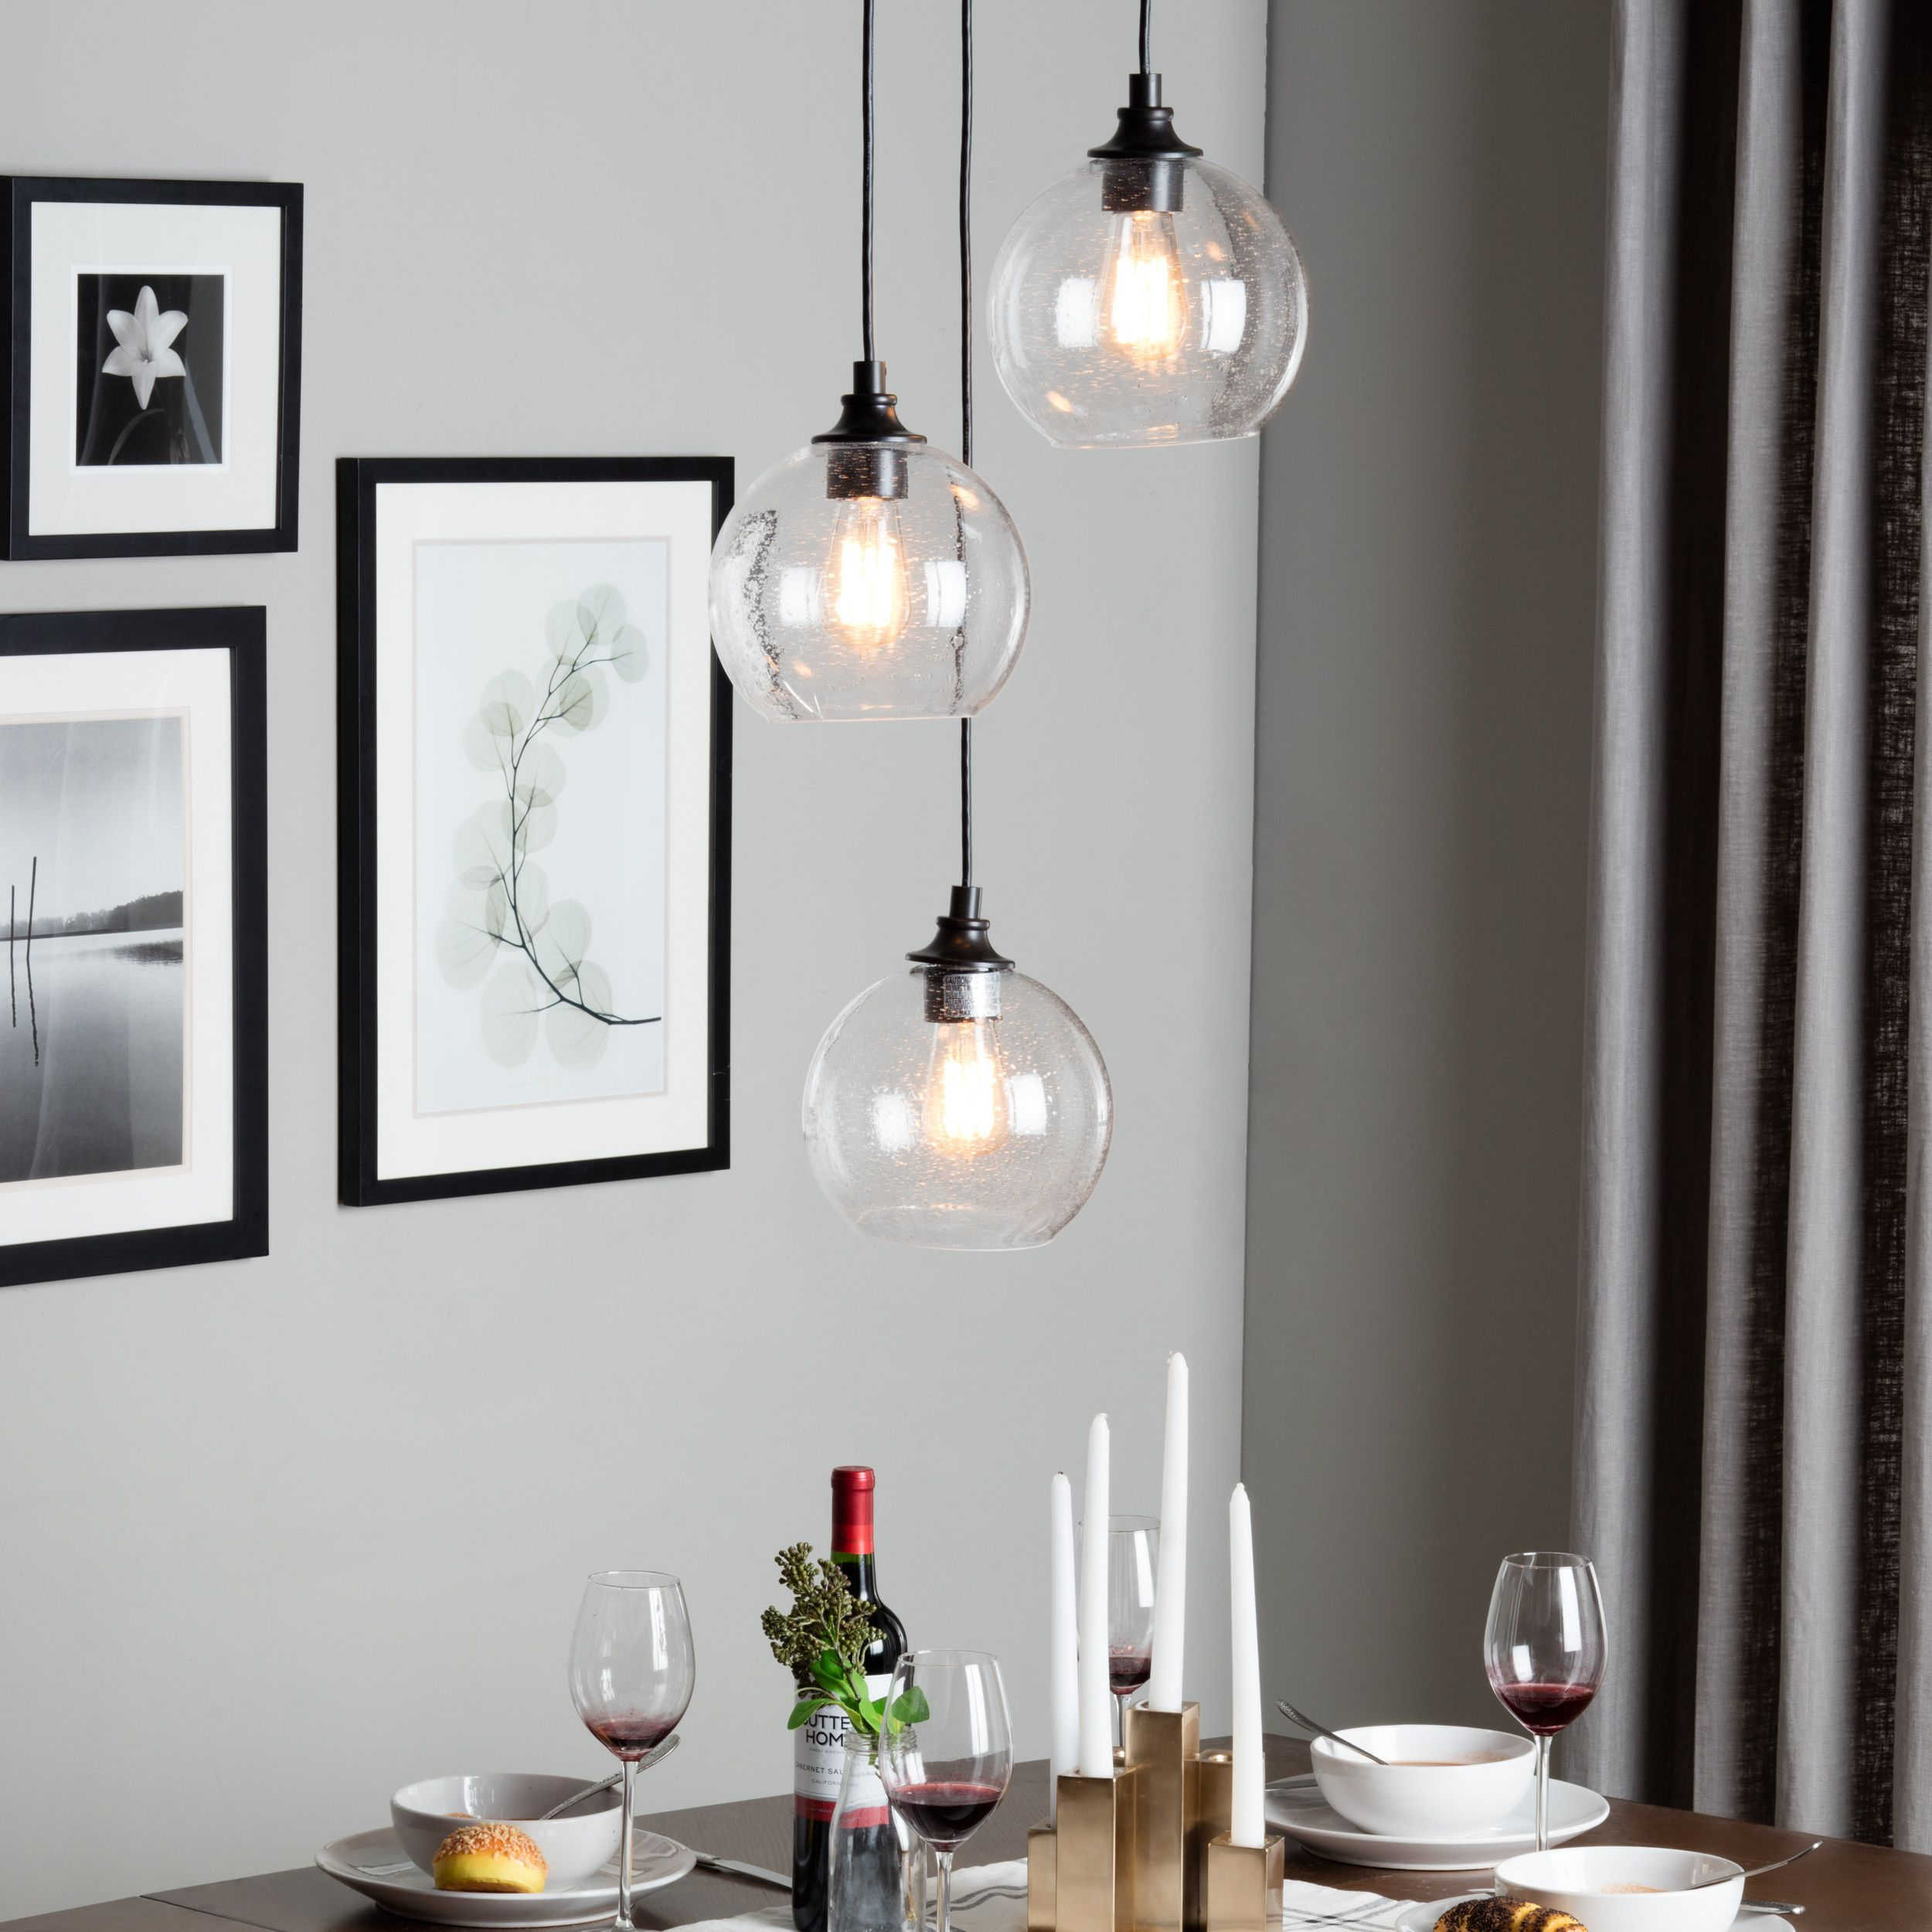 love the light! Overstock $171 Uptown 3-light clear globe cluster pendant Create a & love the light! Overstock $171 Uptown 3-light clear globe cluster ... azcodes.com